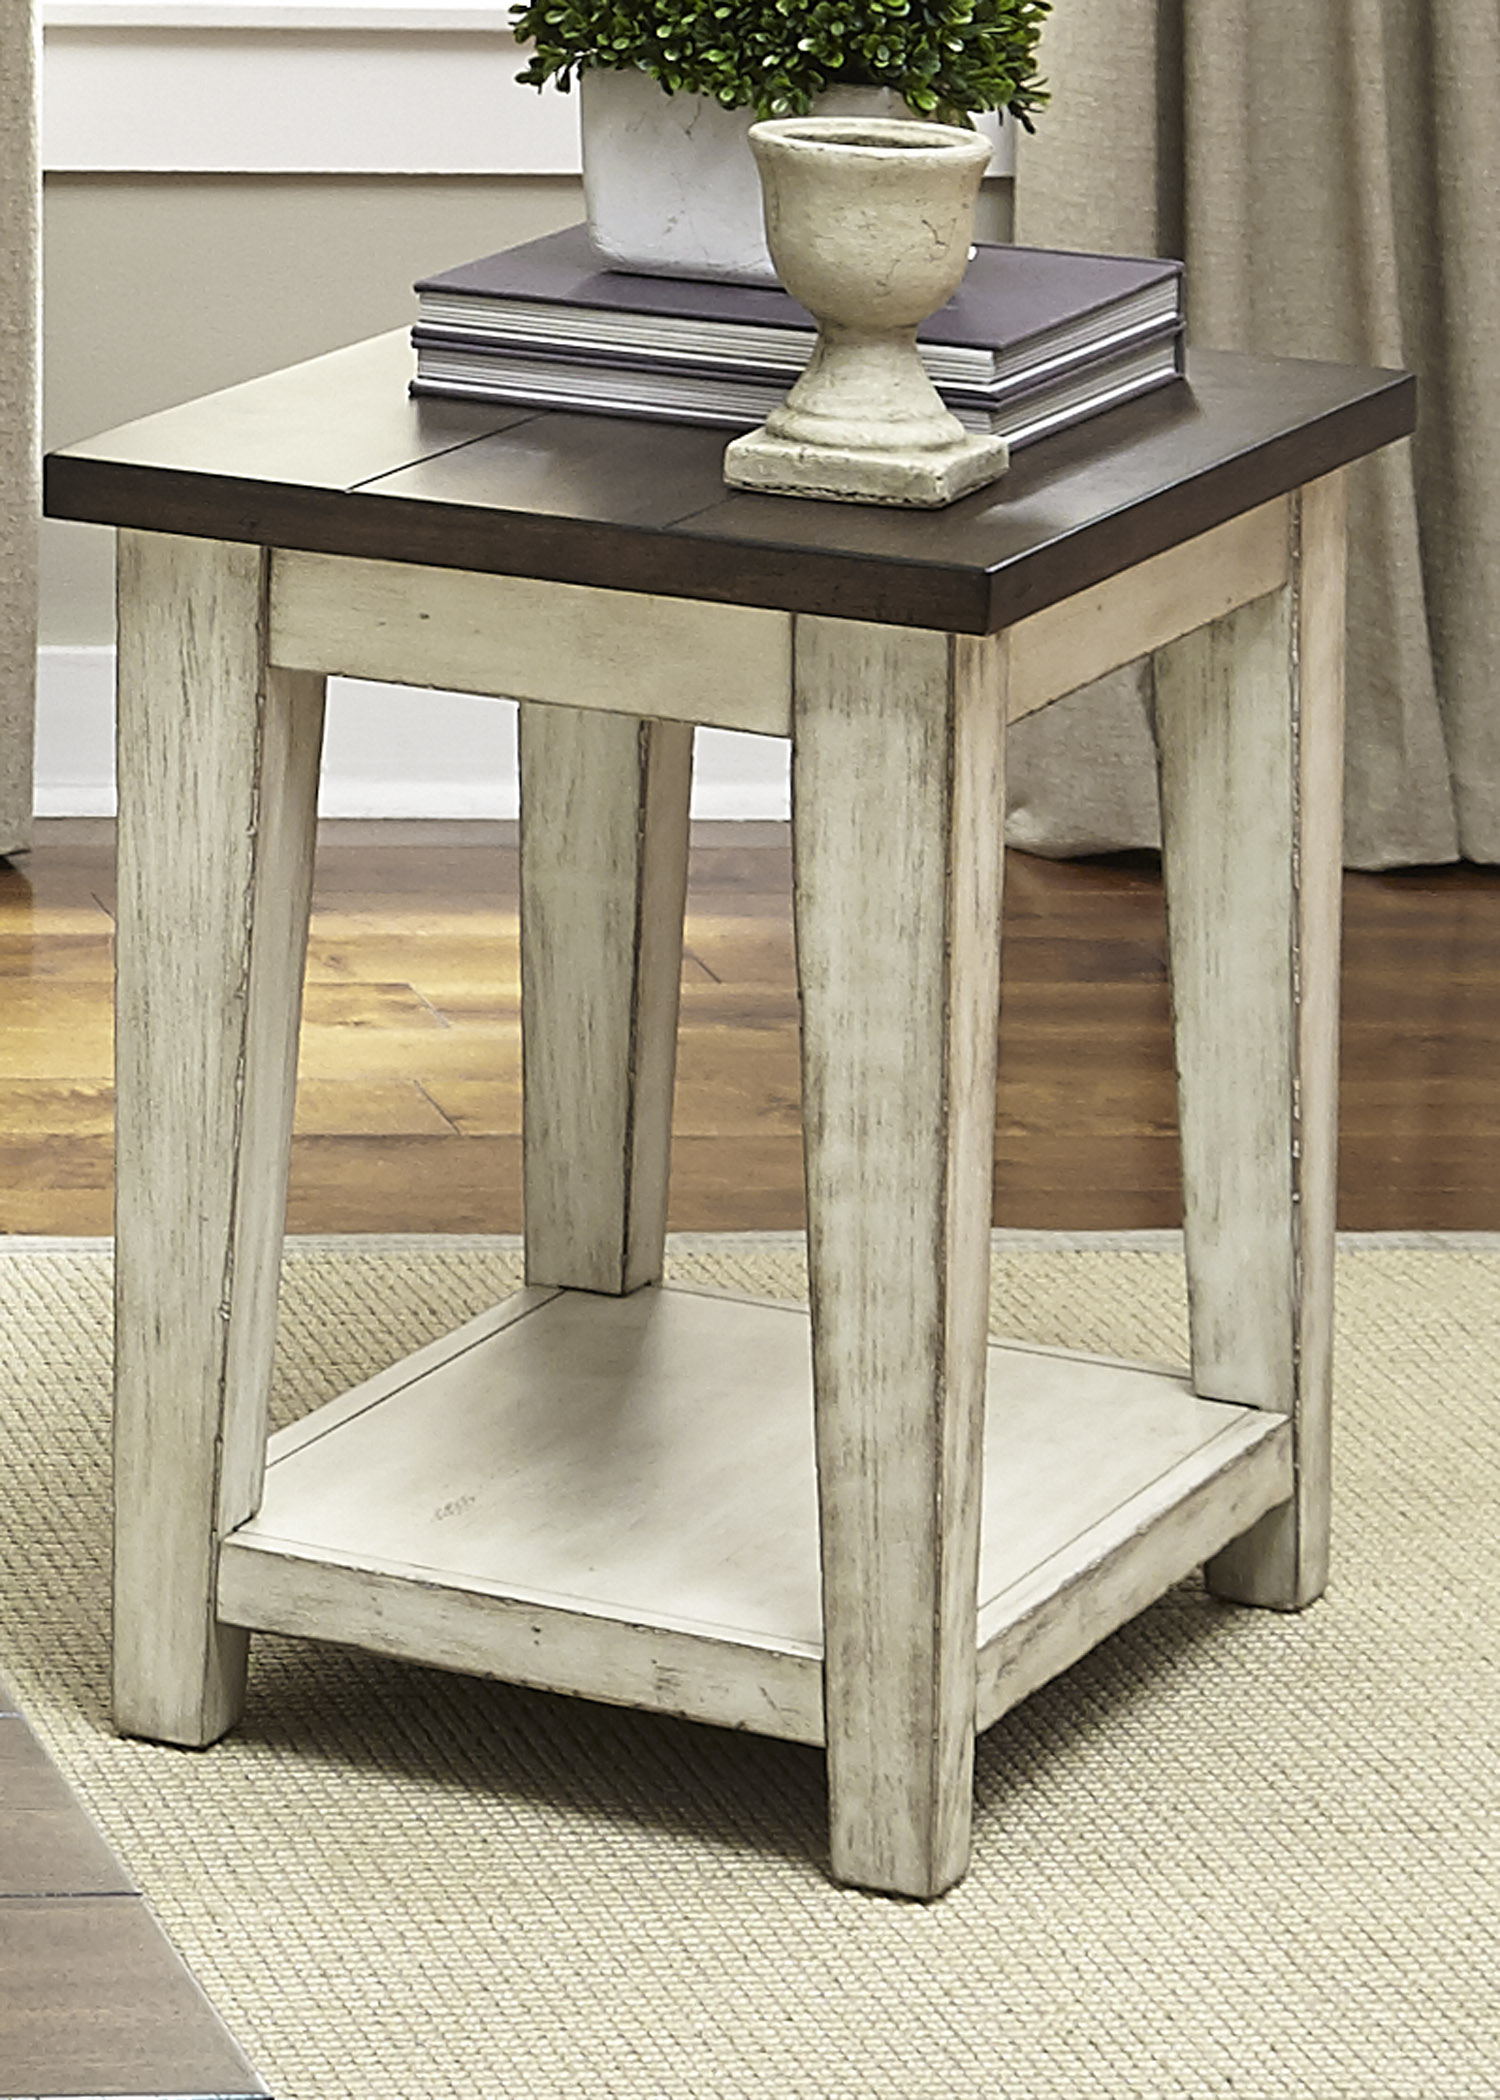 liberty furniture lancaster rustic end table with light products color occasional tables farm style unfinished mirrors ashley porter nightstand build out pallets bar height legs